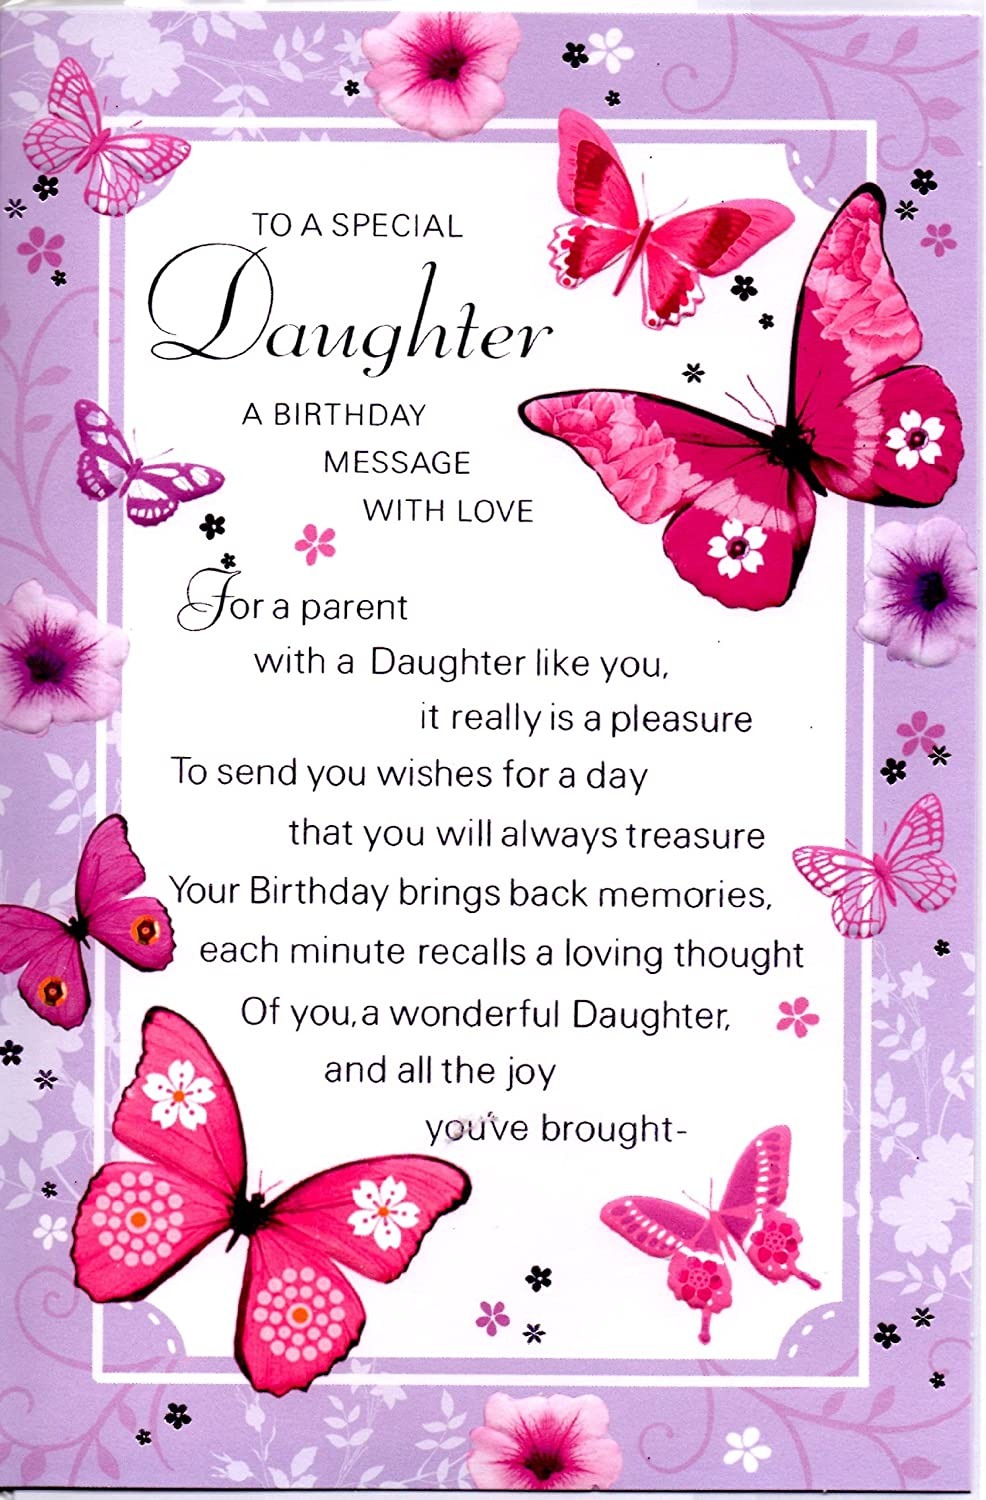 Daughter birthday card to a special daughter a birthday message daughter birthday card to a special daughter a birthday message with love lilac butterflies amazon kitchen home m4hsunfo